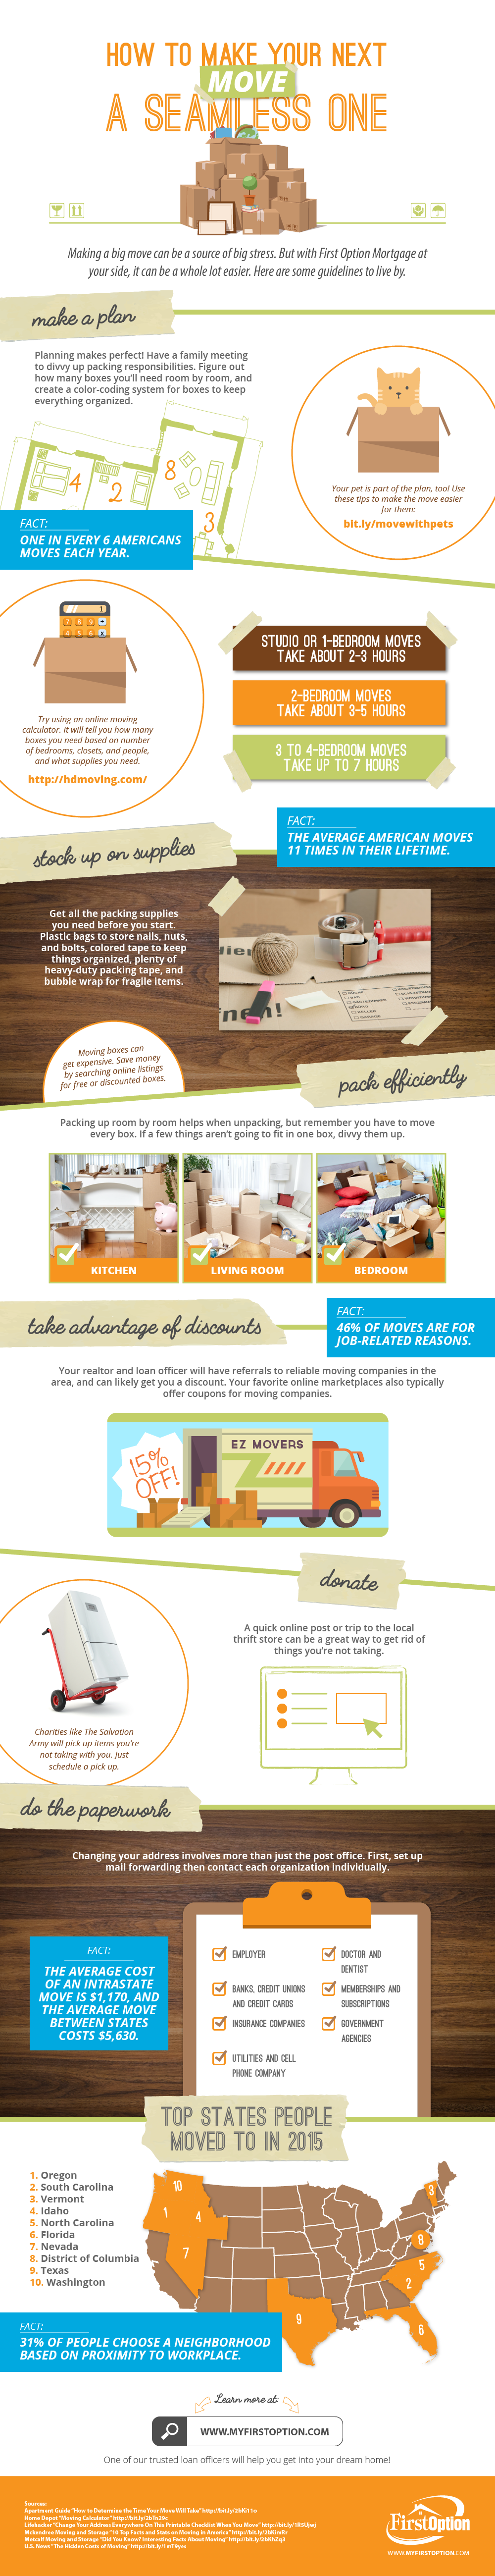 Packing up and moving can be stressful but with these tips, your next move will be easy.